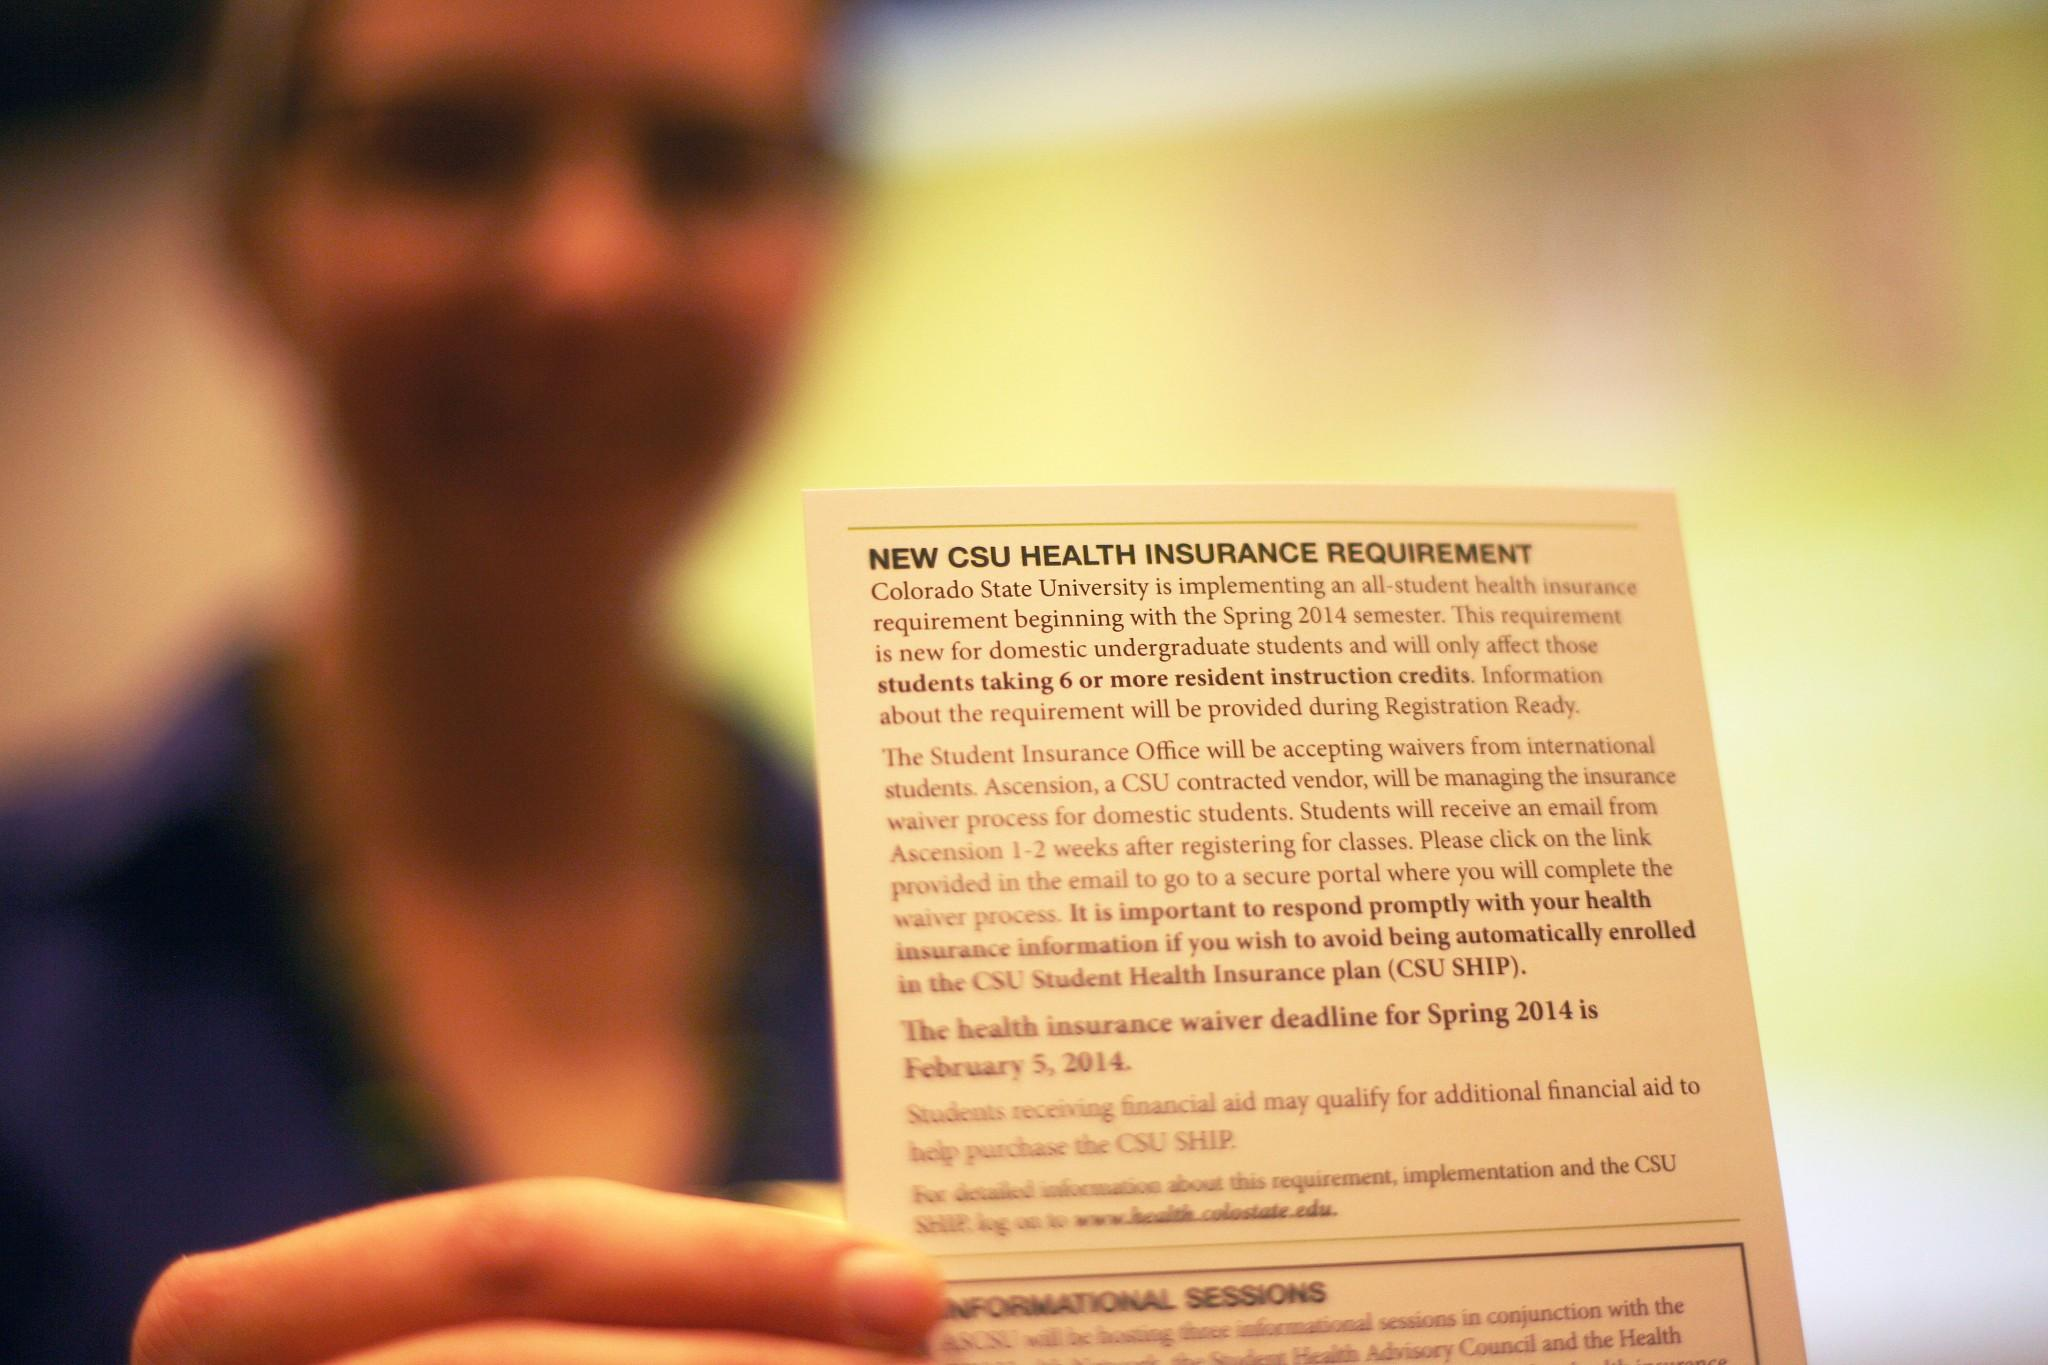 ASCSU Executive Direct of Health Mackenzie Whitesell holds up an informational card about the change in the CSU health care requirements with the implementation of Obamacare. Health insurance is now mandatory for all CSU students to have and if student's do not provide proof of their health insurance by Feb. 5th they will be automatically enrolled in CSU's health plan.